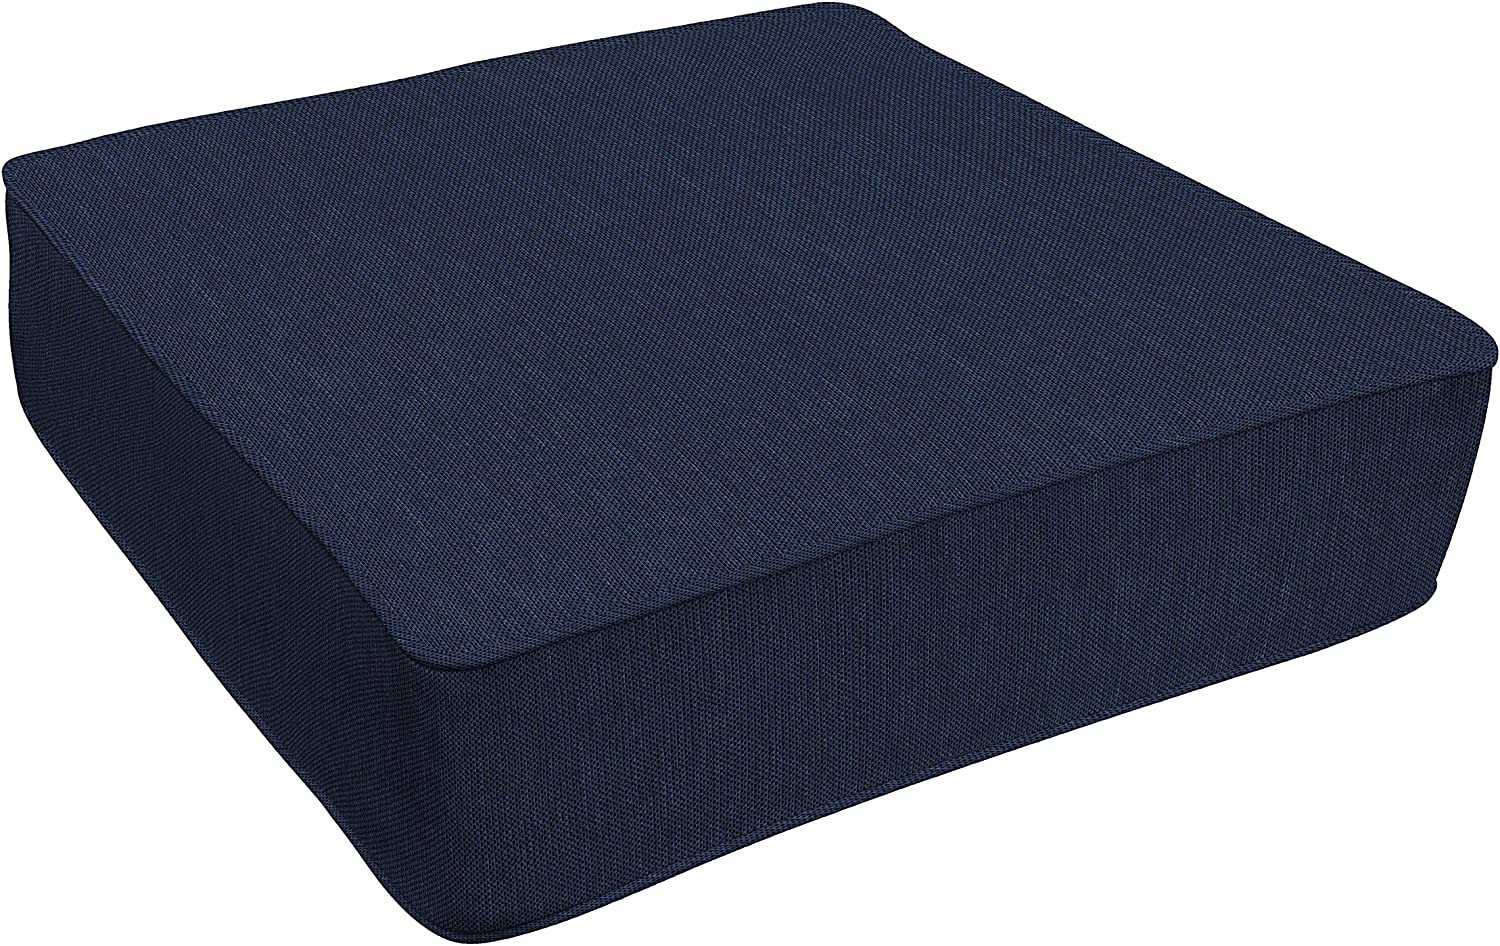 Honeycomb Indoor/Outdoor Textured Solid Indigo Blue Deep Seating Chair Cushion Containing Recycled Polyester Fill, Reversible Design, Weather and Stain Resistant Patio Cushions: 24